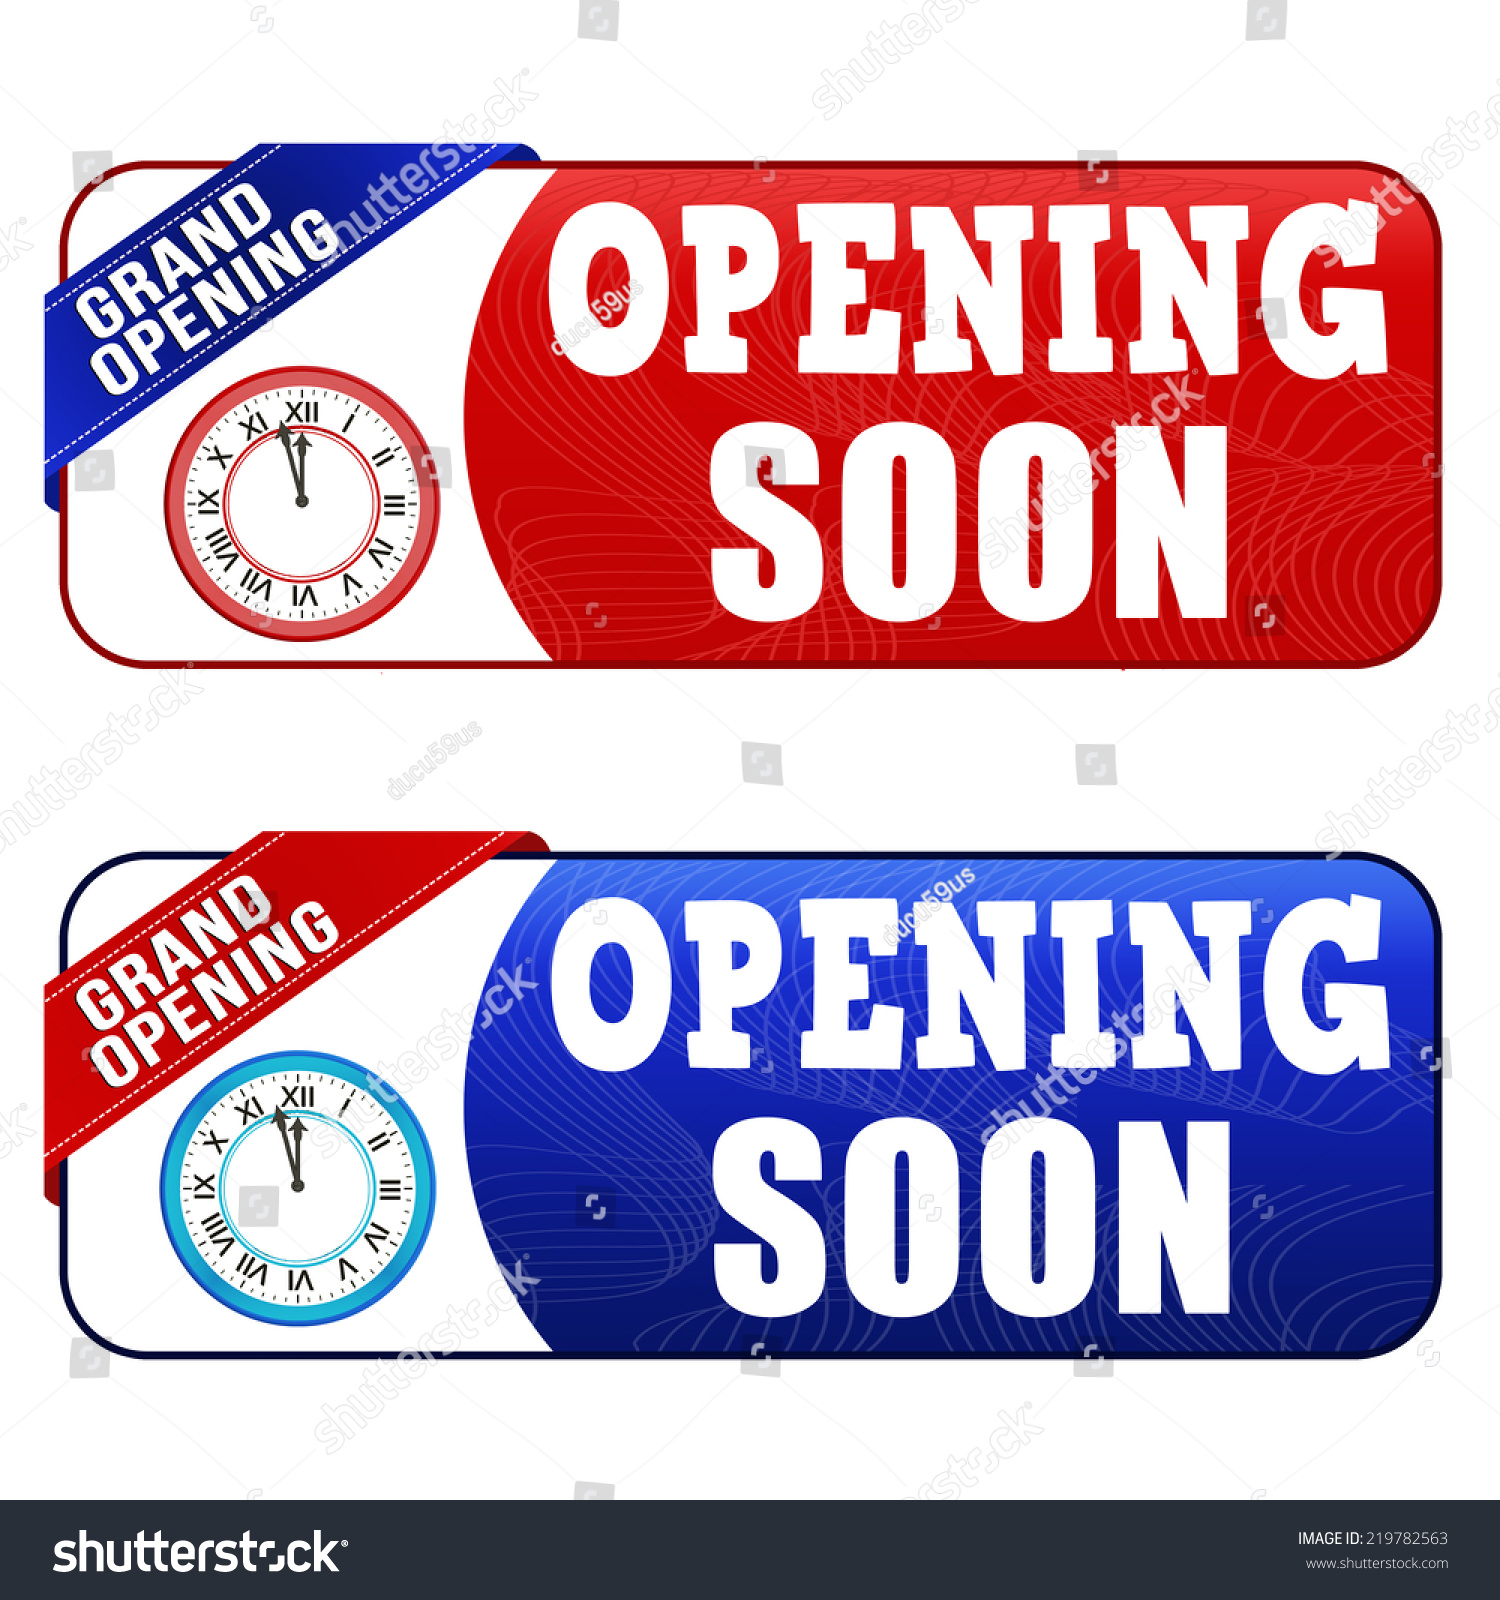 Opening soon coupon voucher tag Red and blue template with frame vector illustration